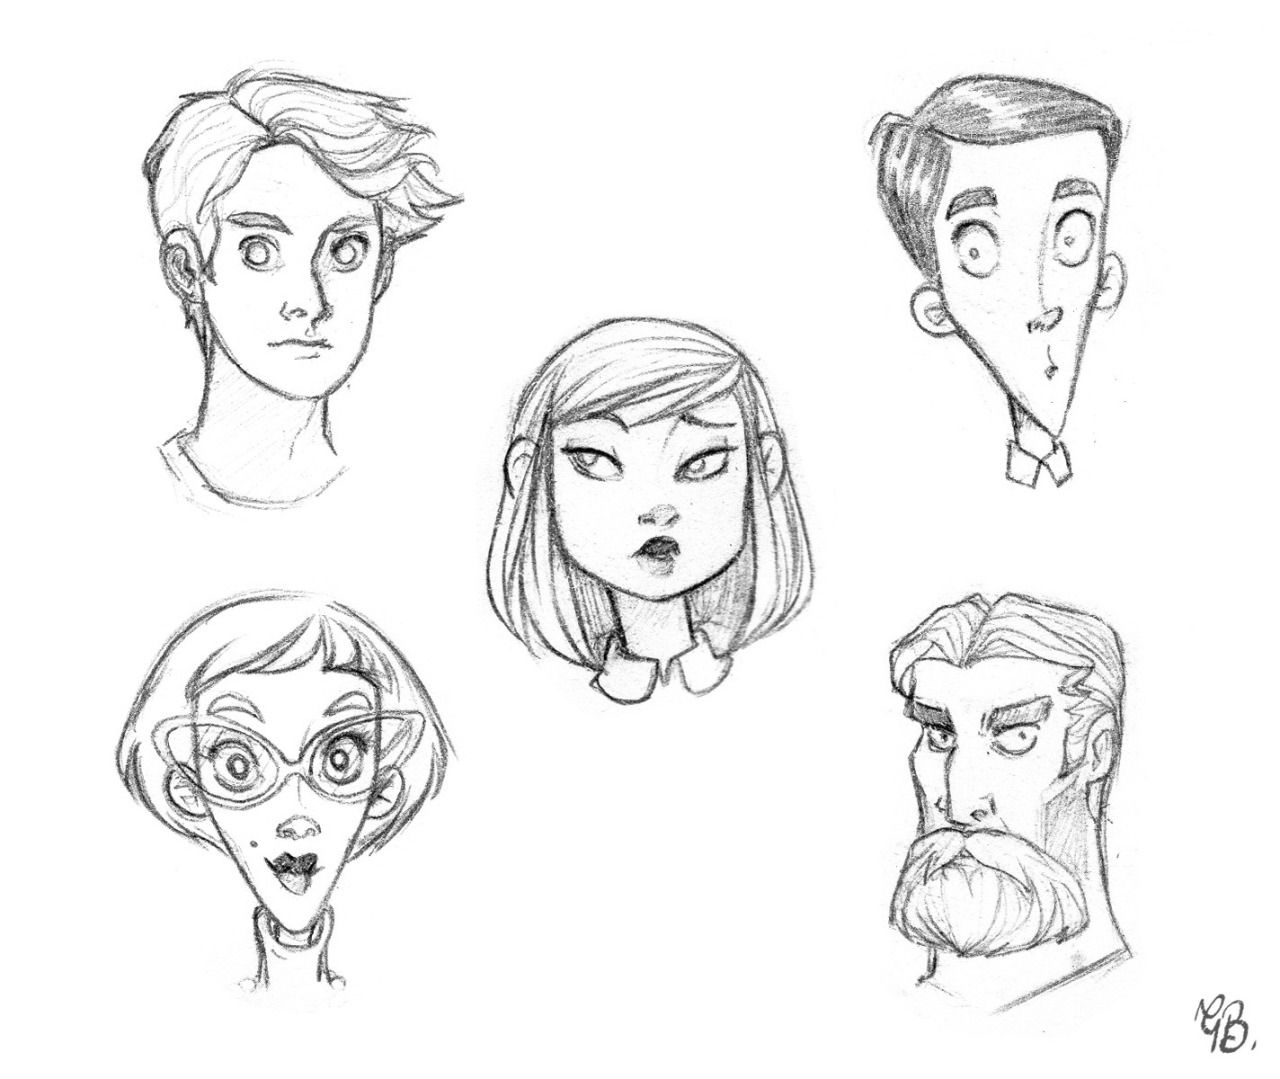 Daily Sketches #023 - 23/01/2015 Exercising face shapes